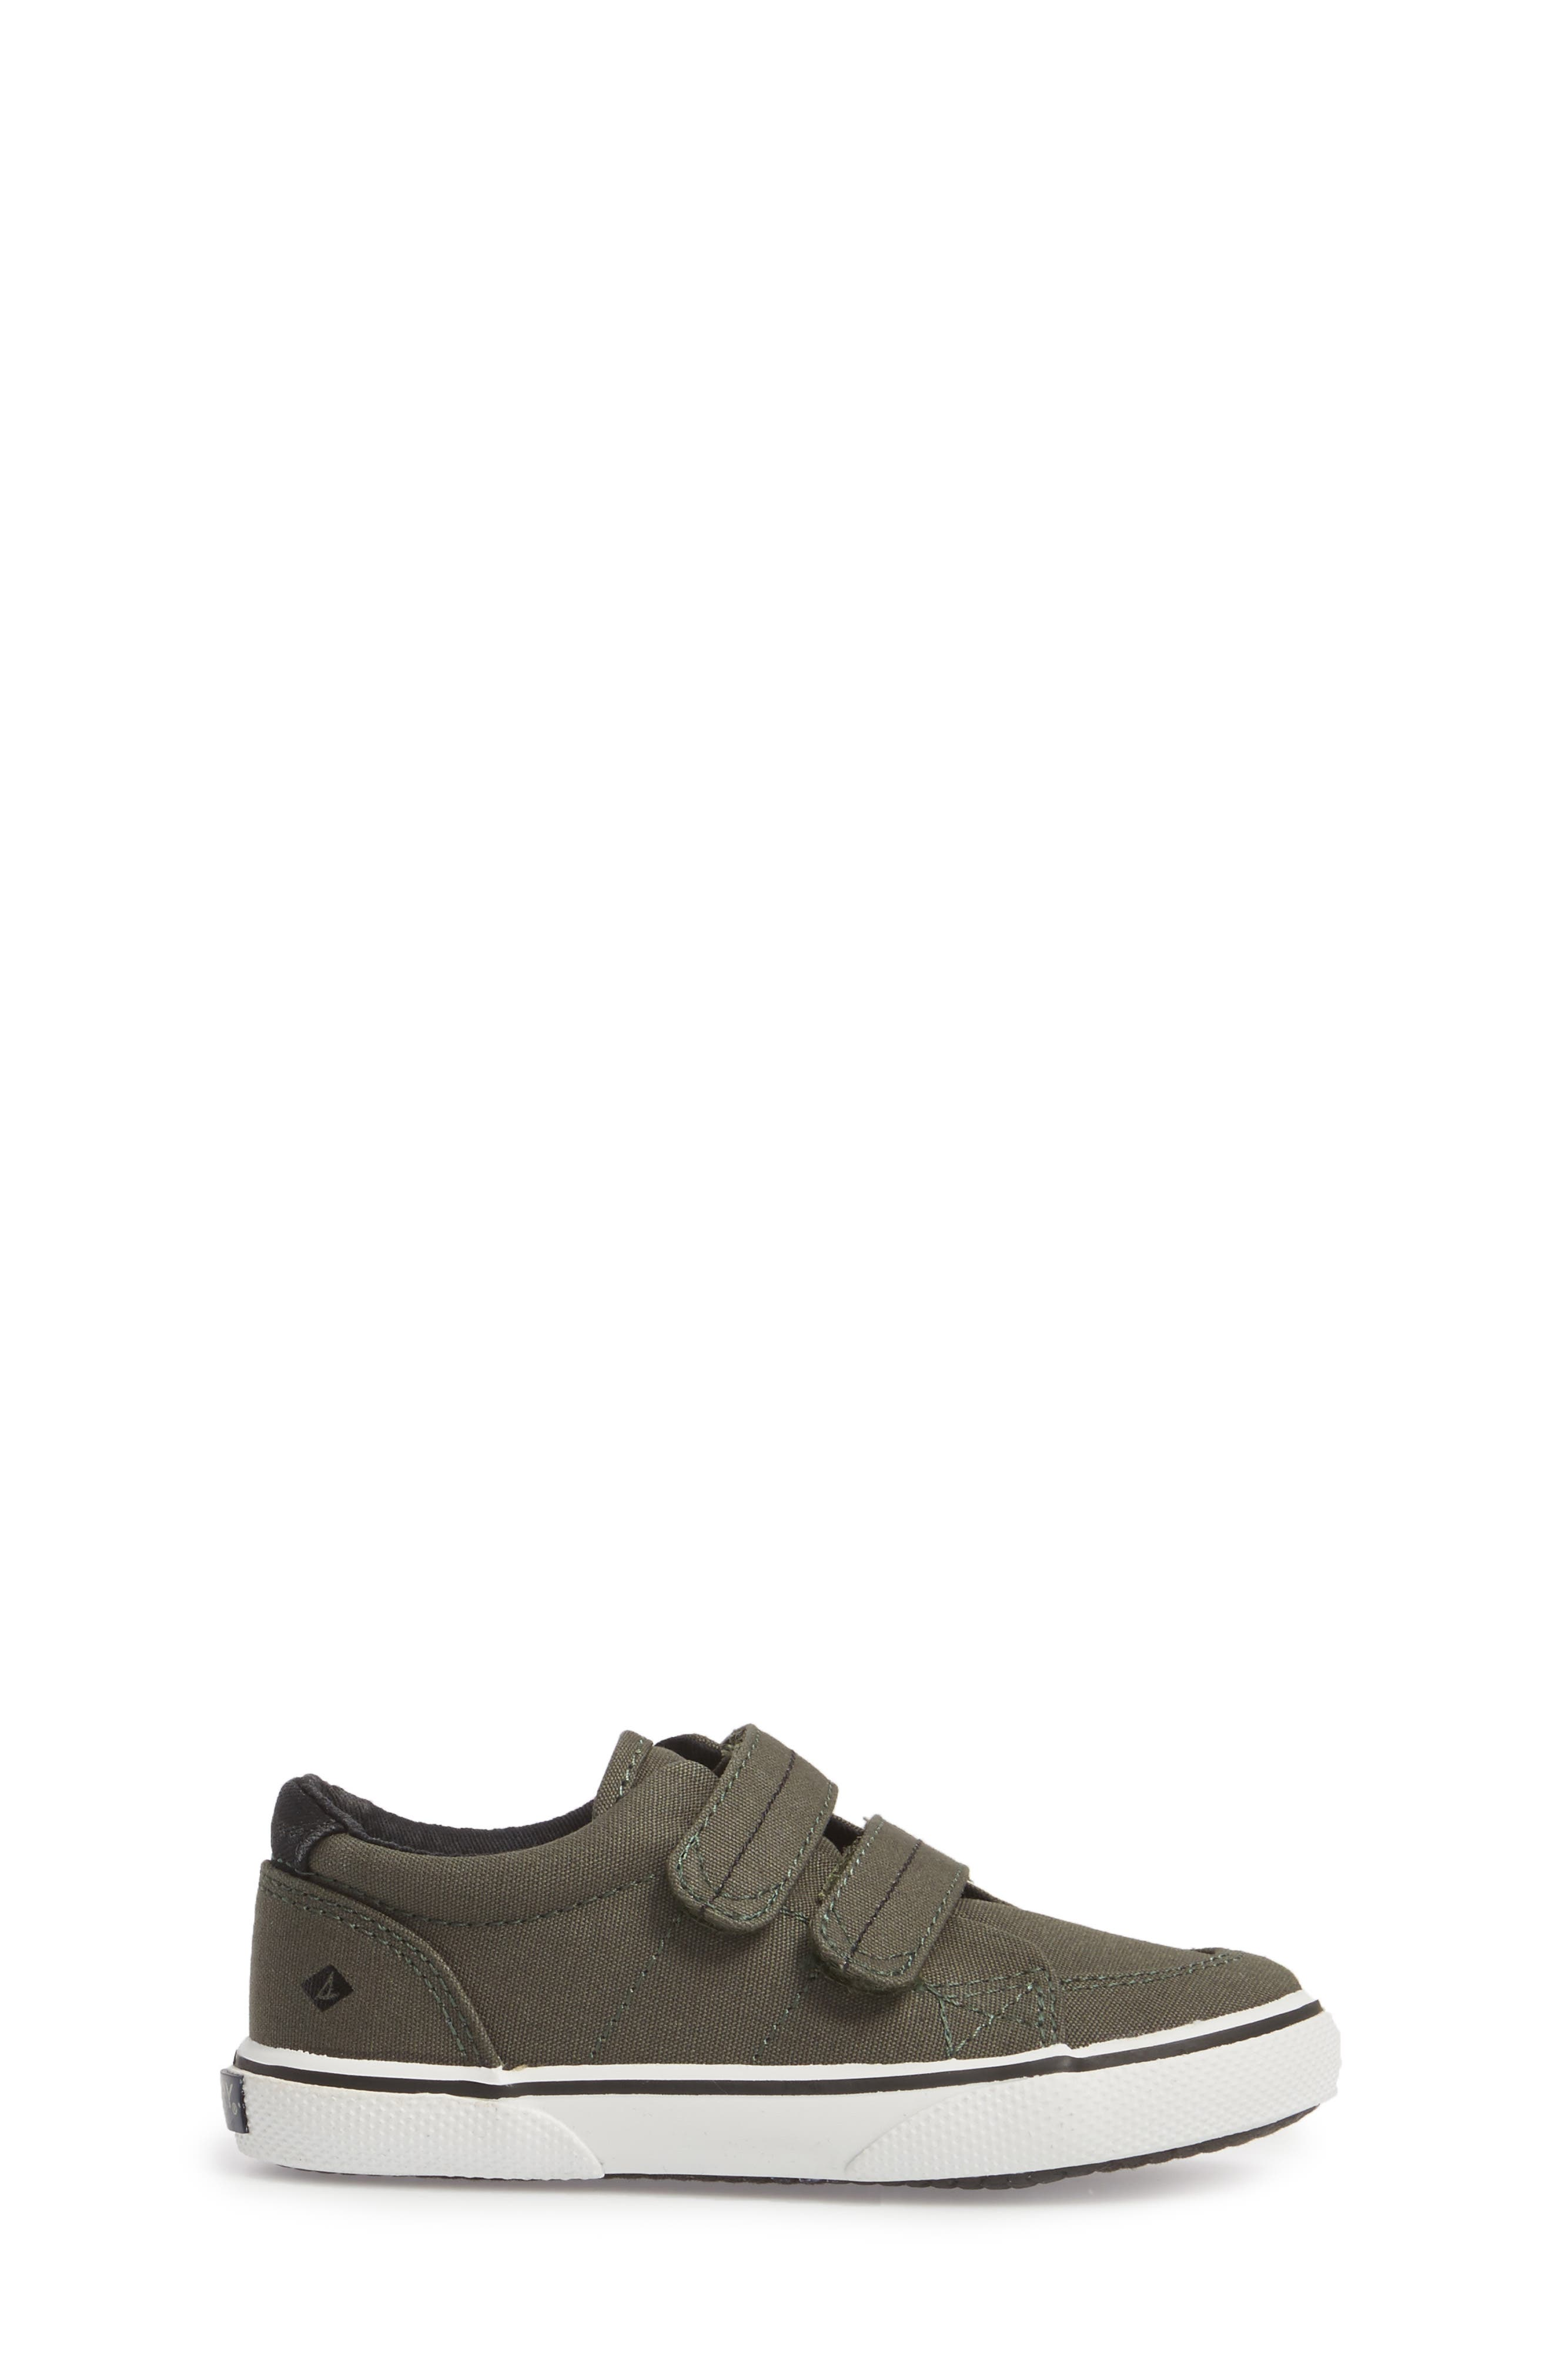 Sperry Top-Sider<sup>®</sup> Kids 'Halyard' Sneaker,                             Alternate thumbnail 3, color,                             Olive